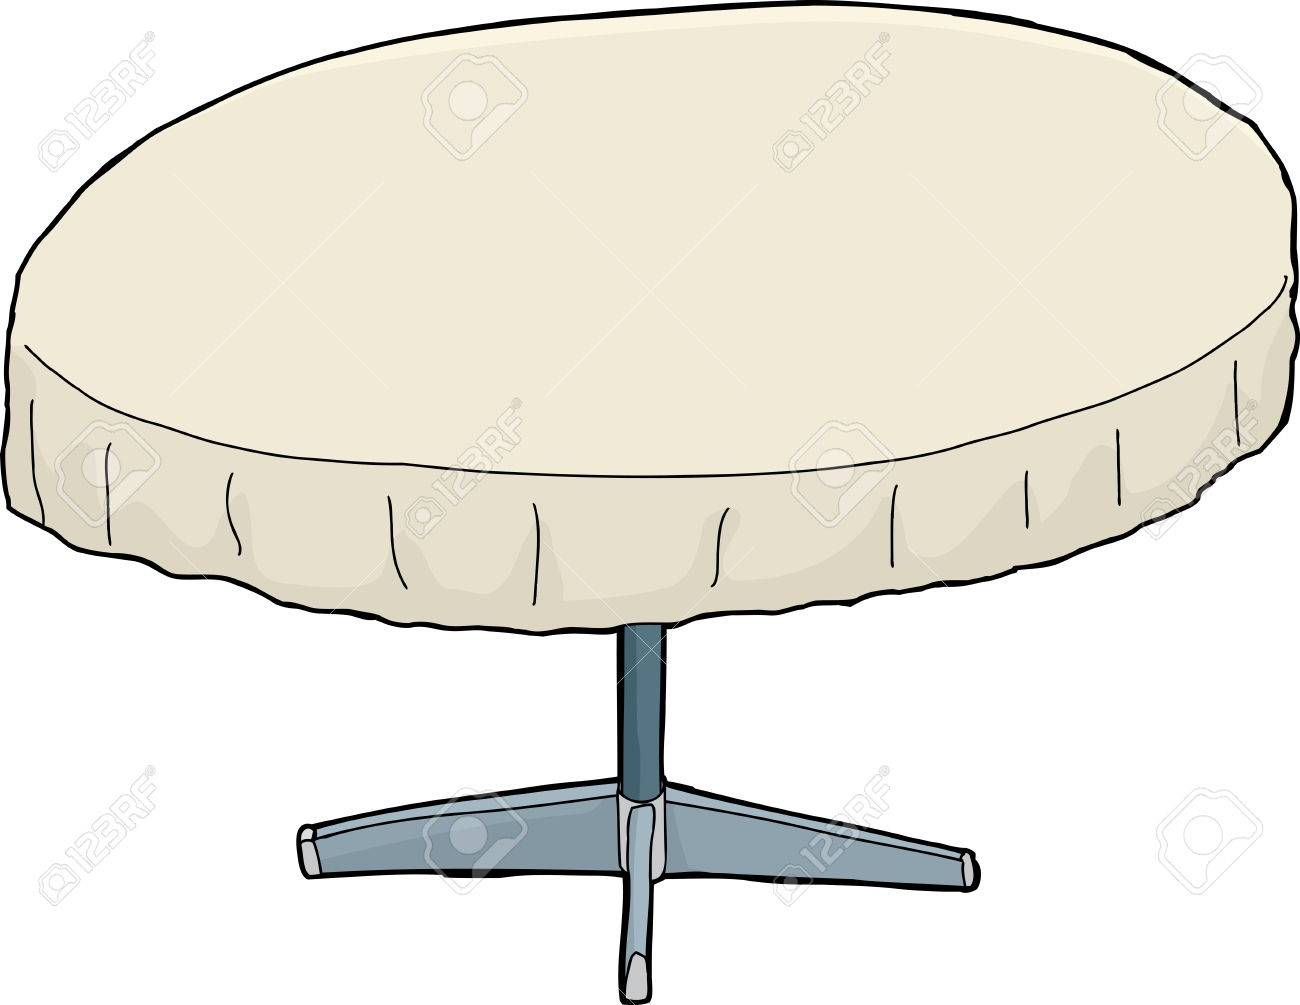 Single Isolated Cartoon Round Table With Tablecloth Royalty Free - Round table clip art